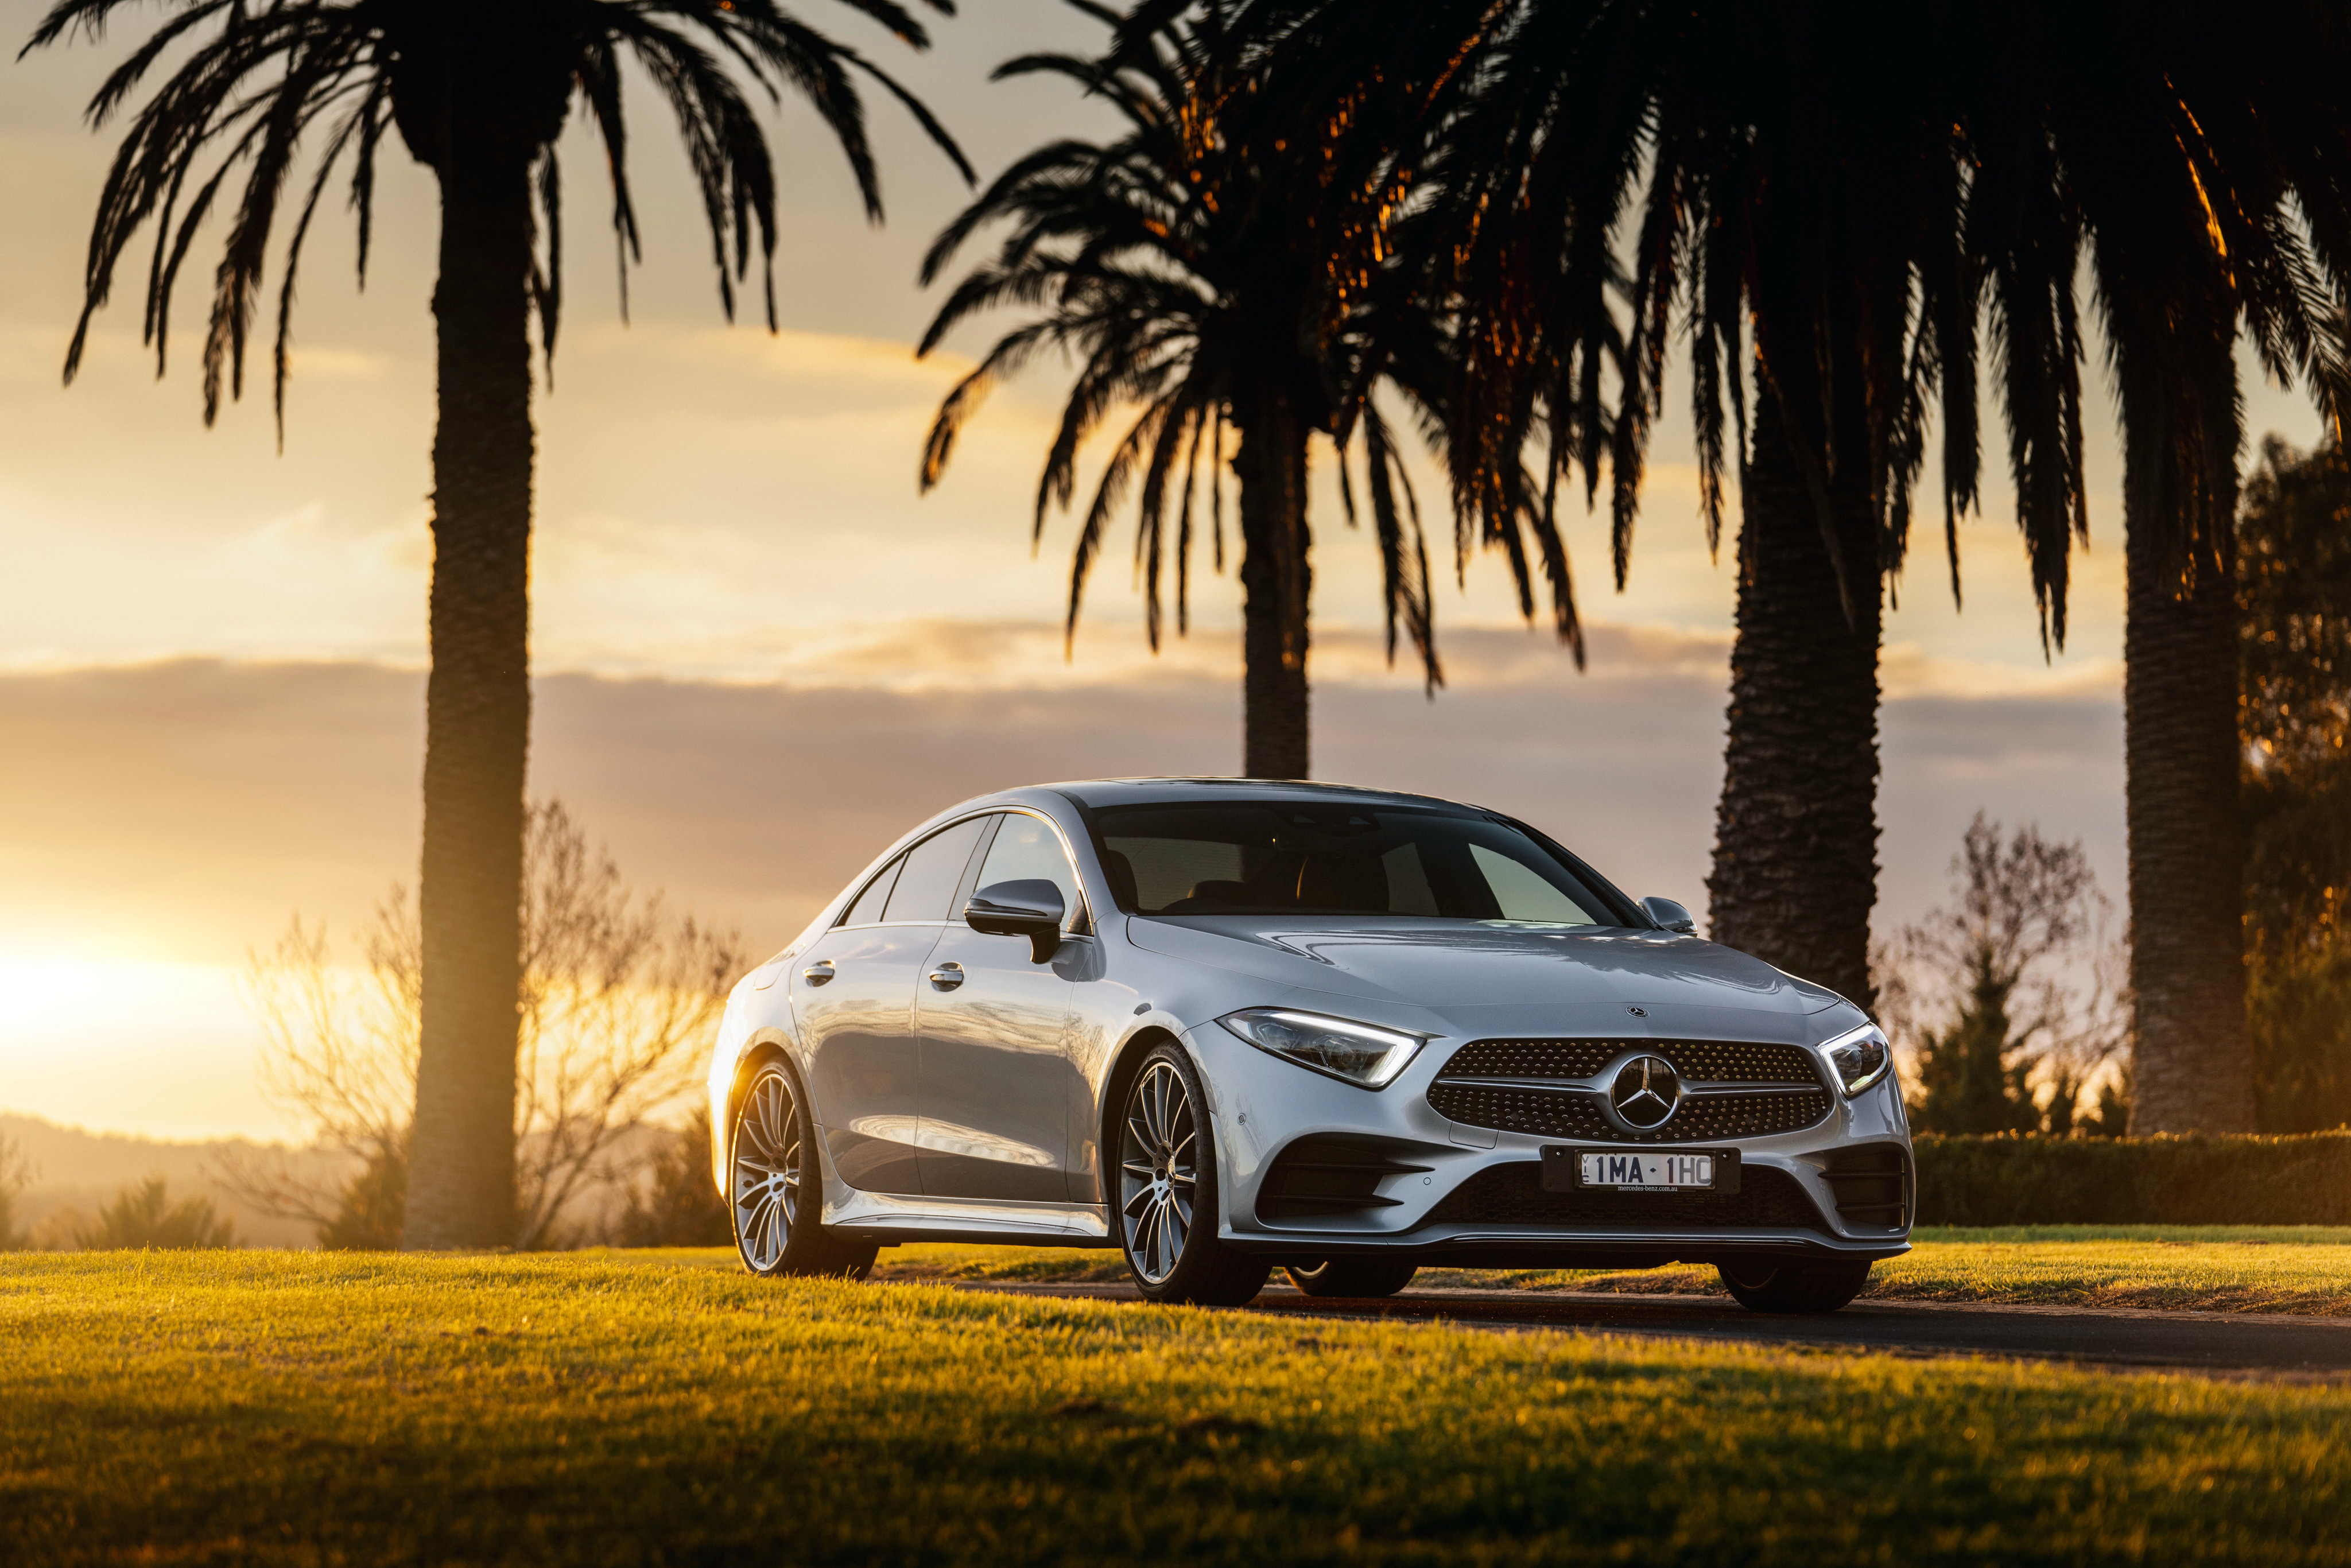 Mercedes Benz CLS 450 4MATIC AMG Line 2018 HD Cars 4k Wallpapers